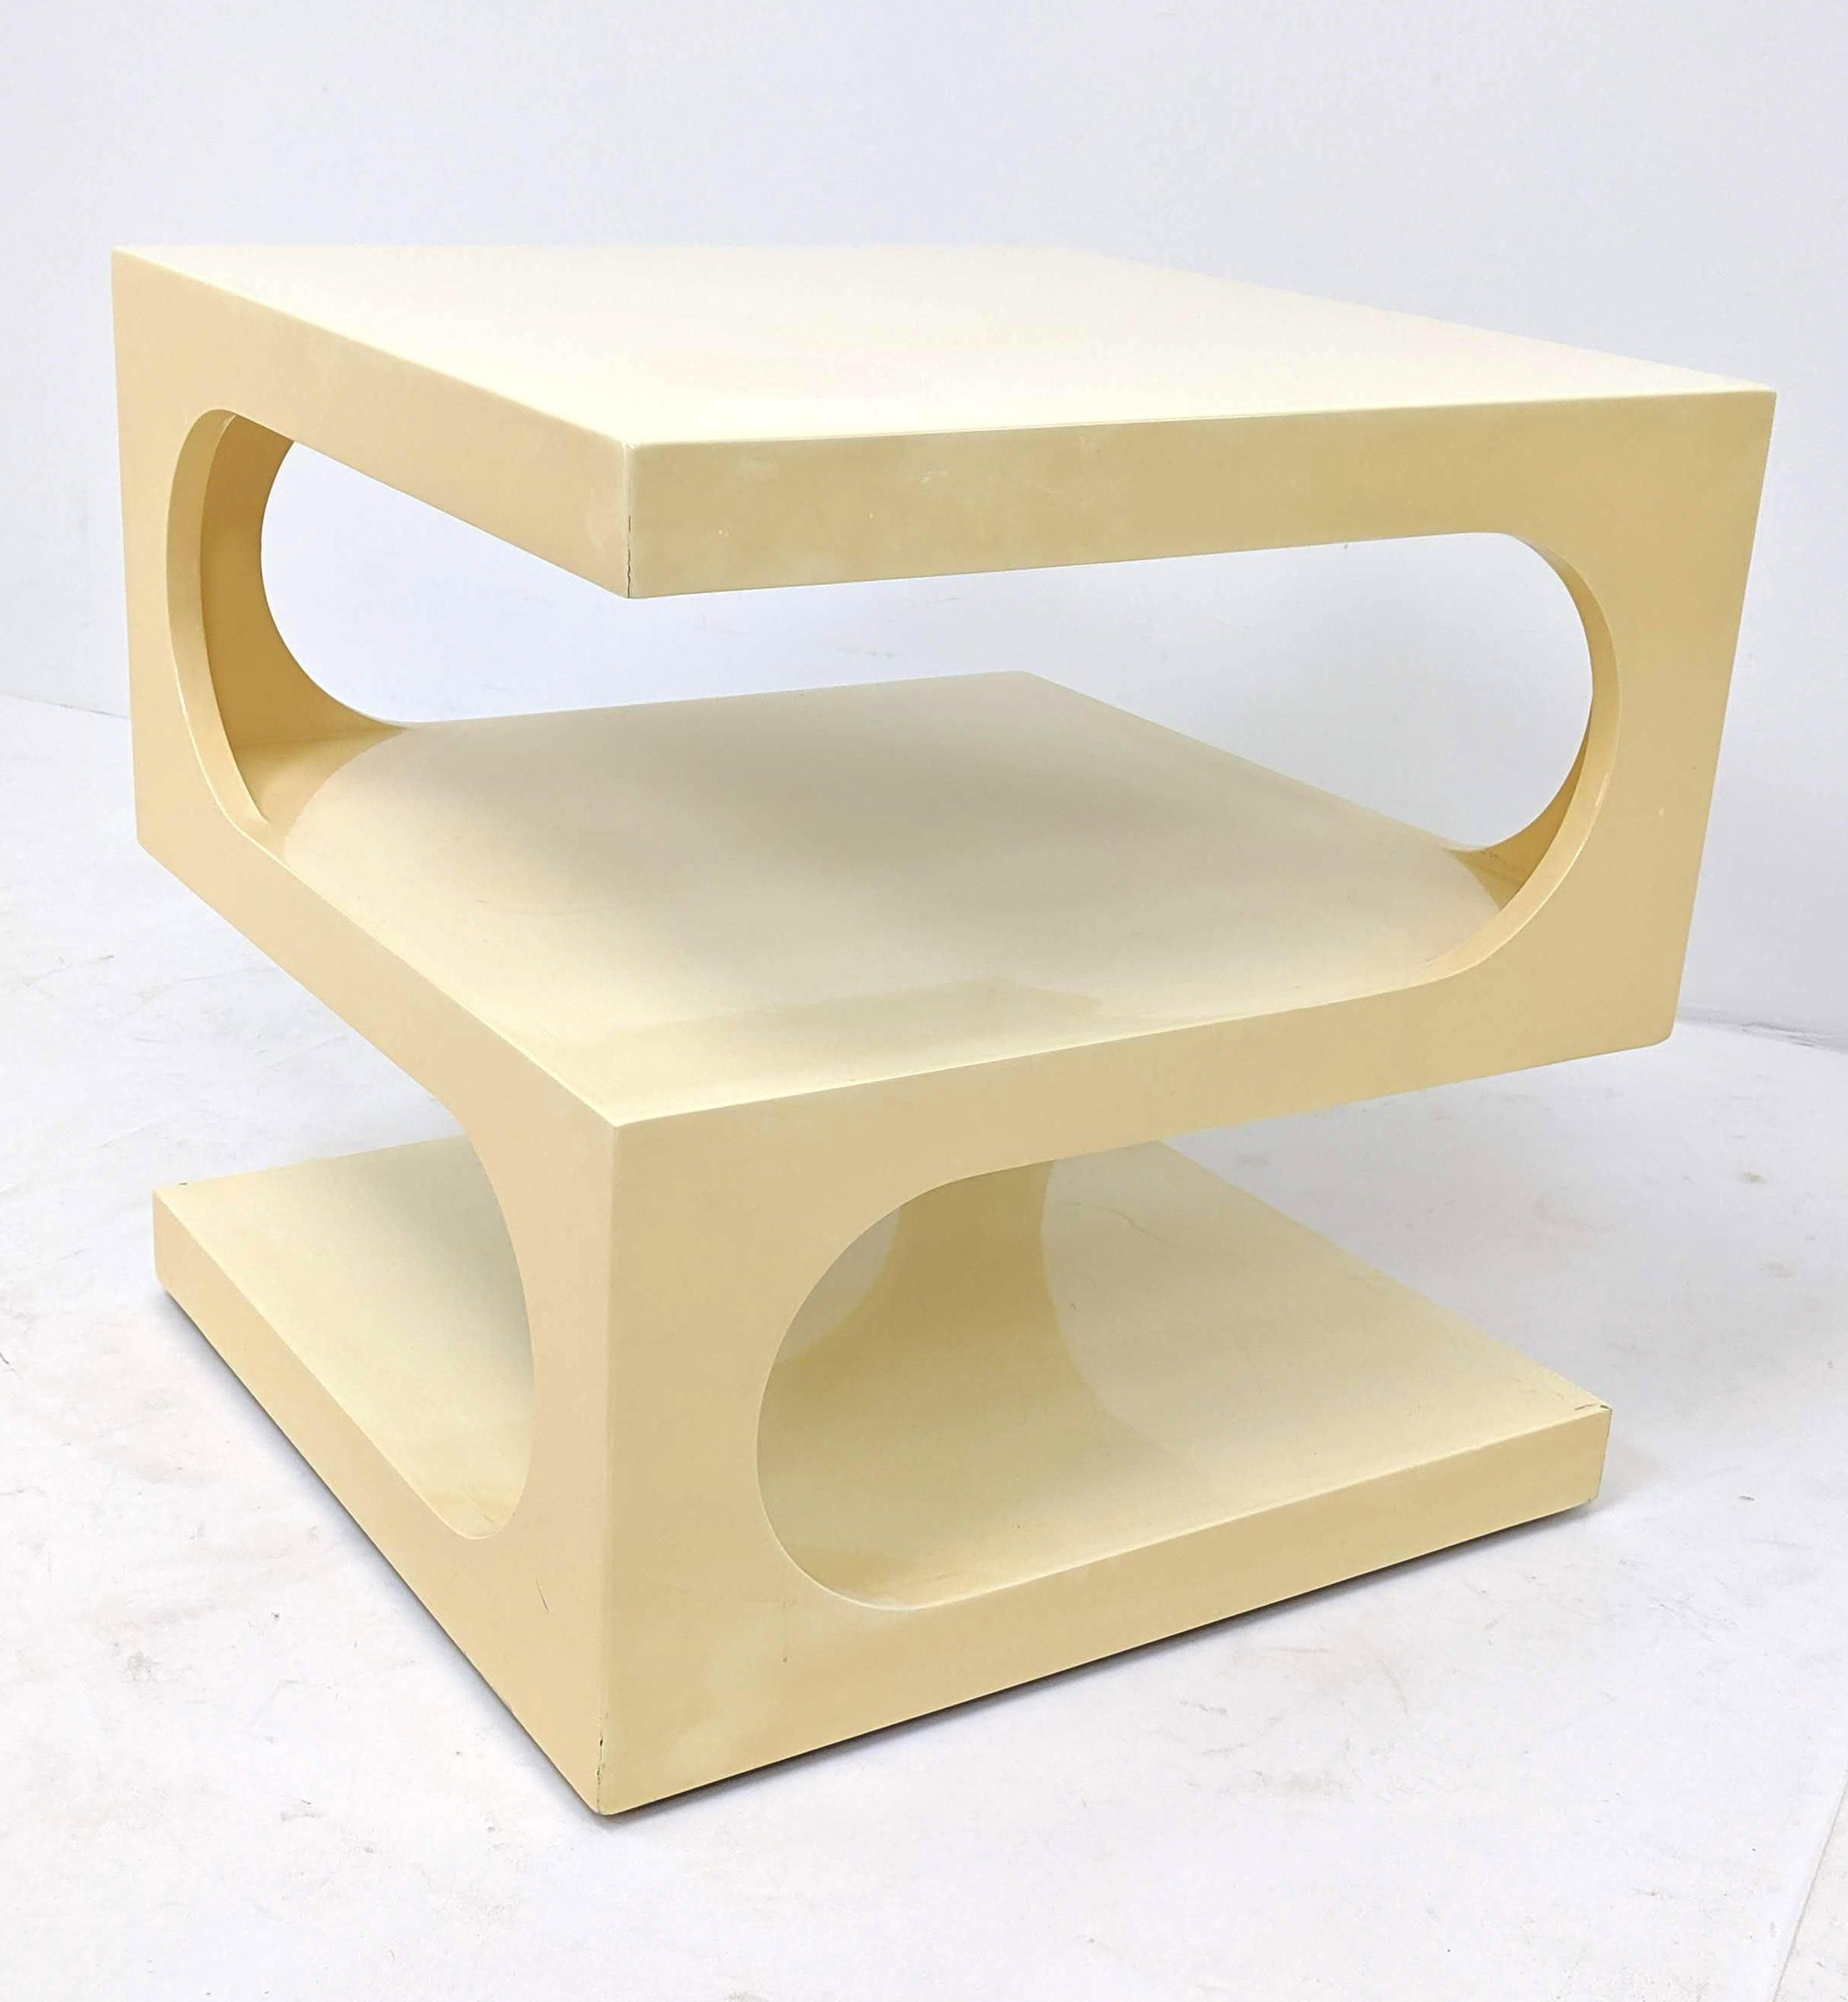 191210 114 Dunbar Style Dimensional Off White Lacquer Side Table Square Cube With Rounded Cutout Tiers Unmarked Side Table Square Side Table Antique Auctions